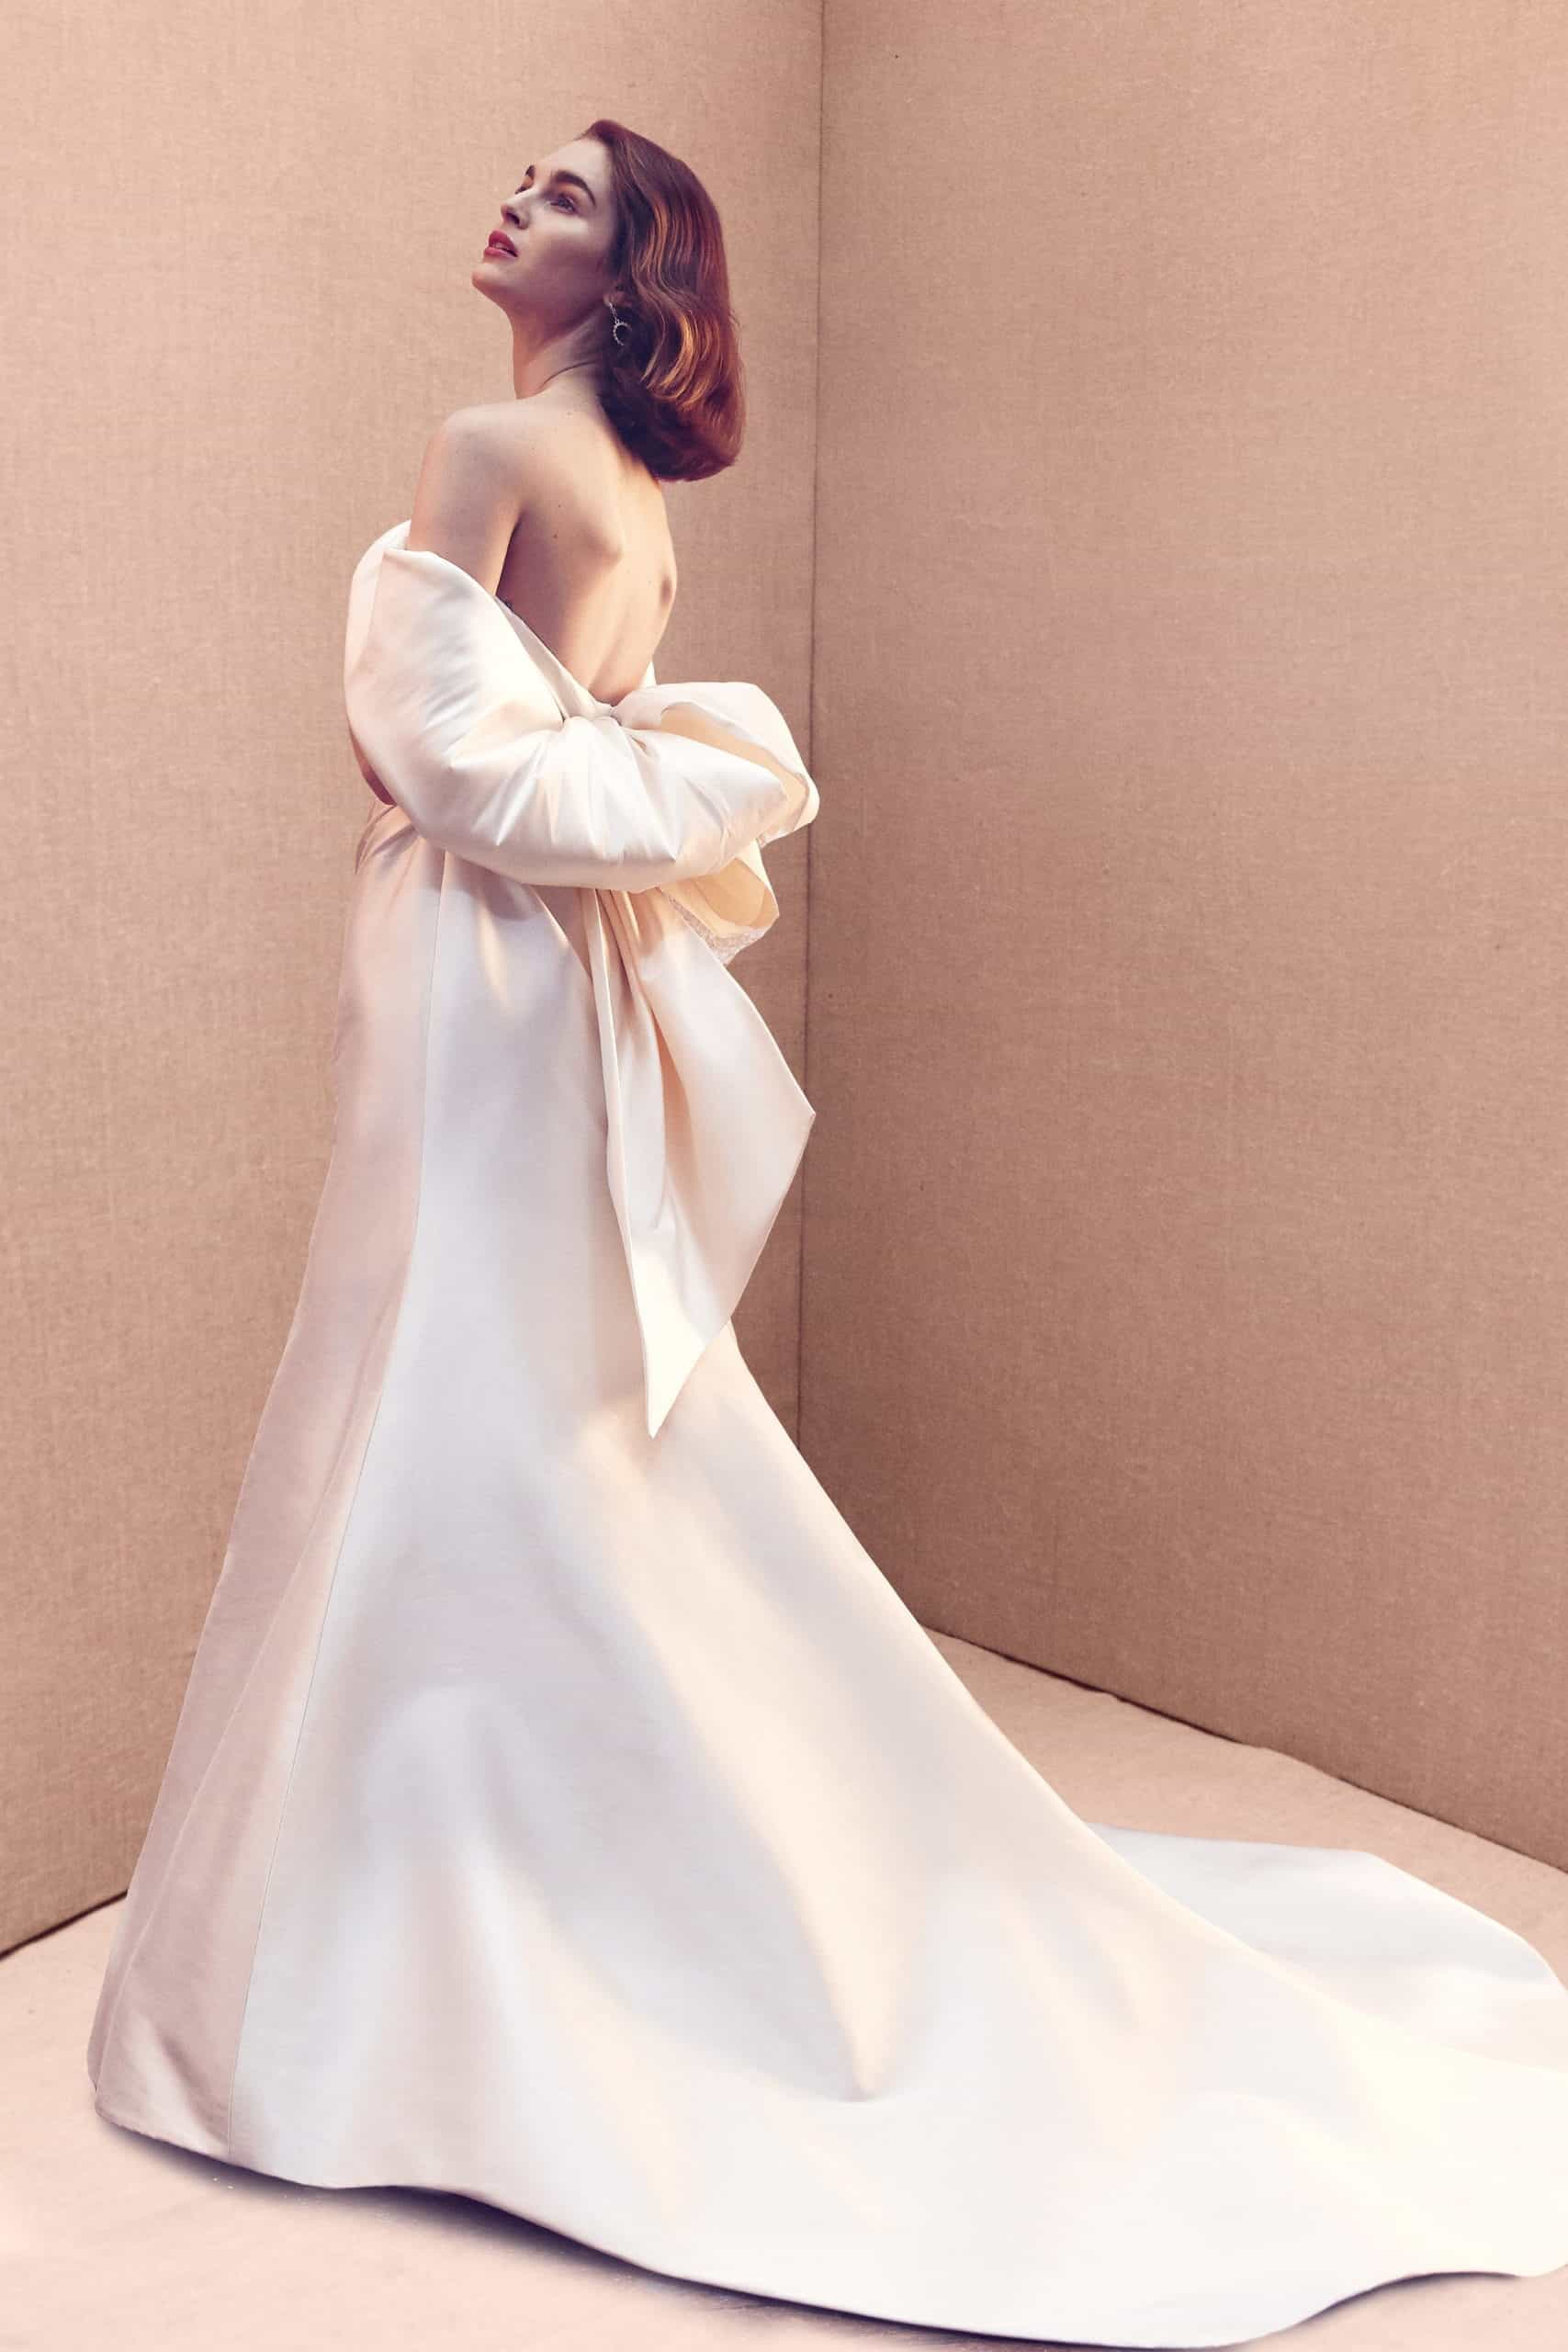 a stain wedding dress with a tail and back bow by Oscar de la Renta